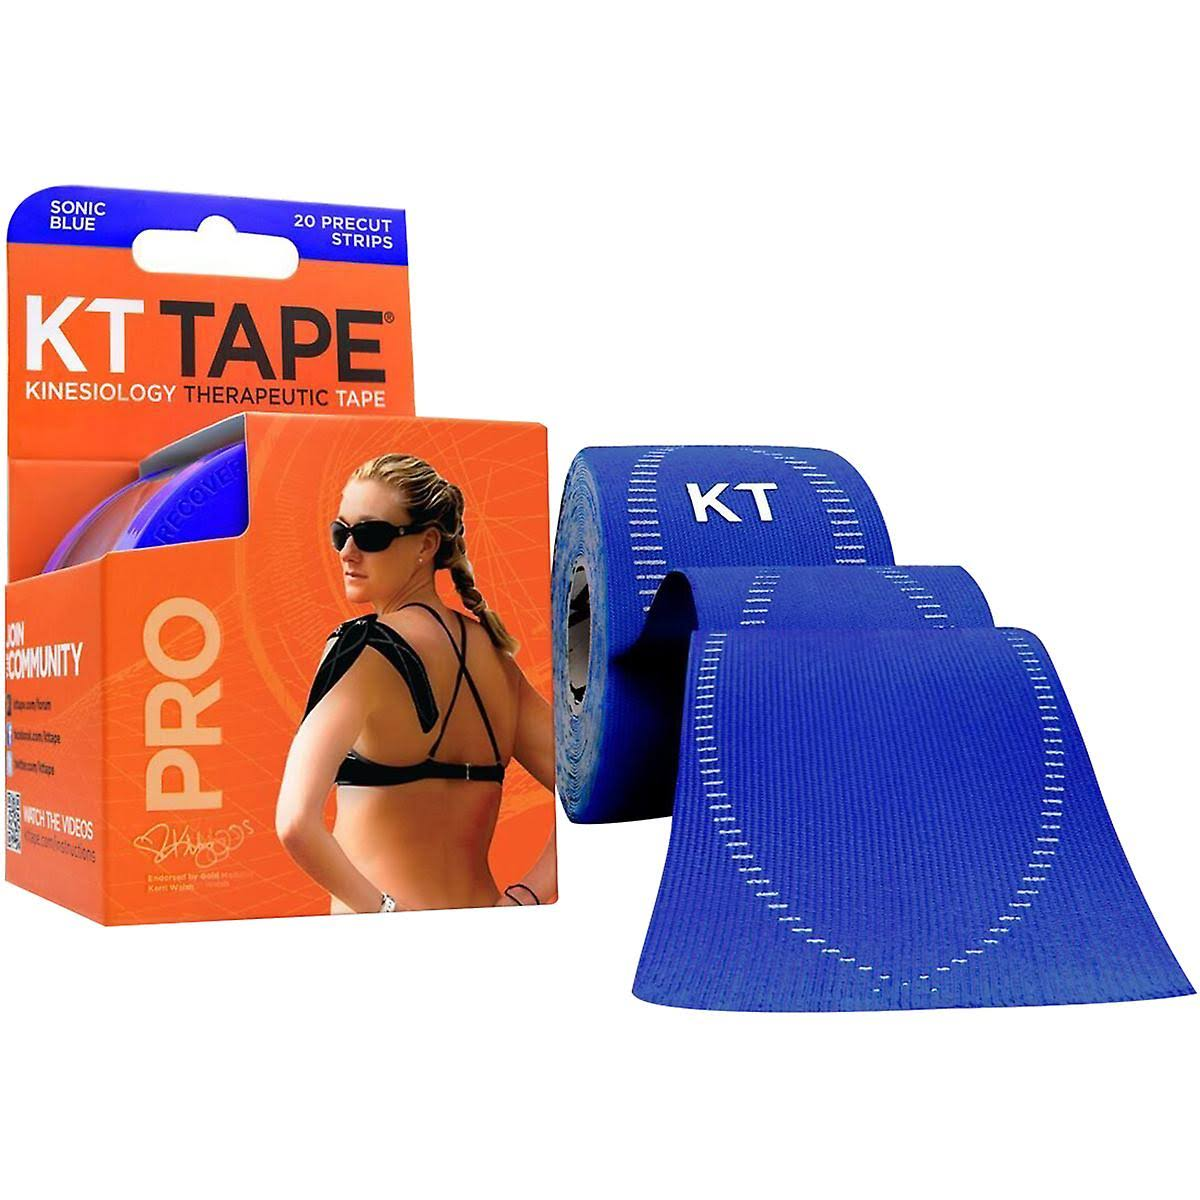 KT TAPE PRO Synthetic Elastic Kinesiology 20 Pre Cut Strips